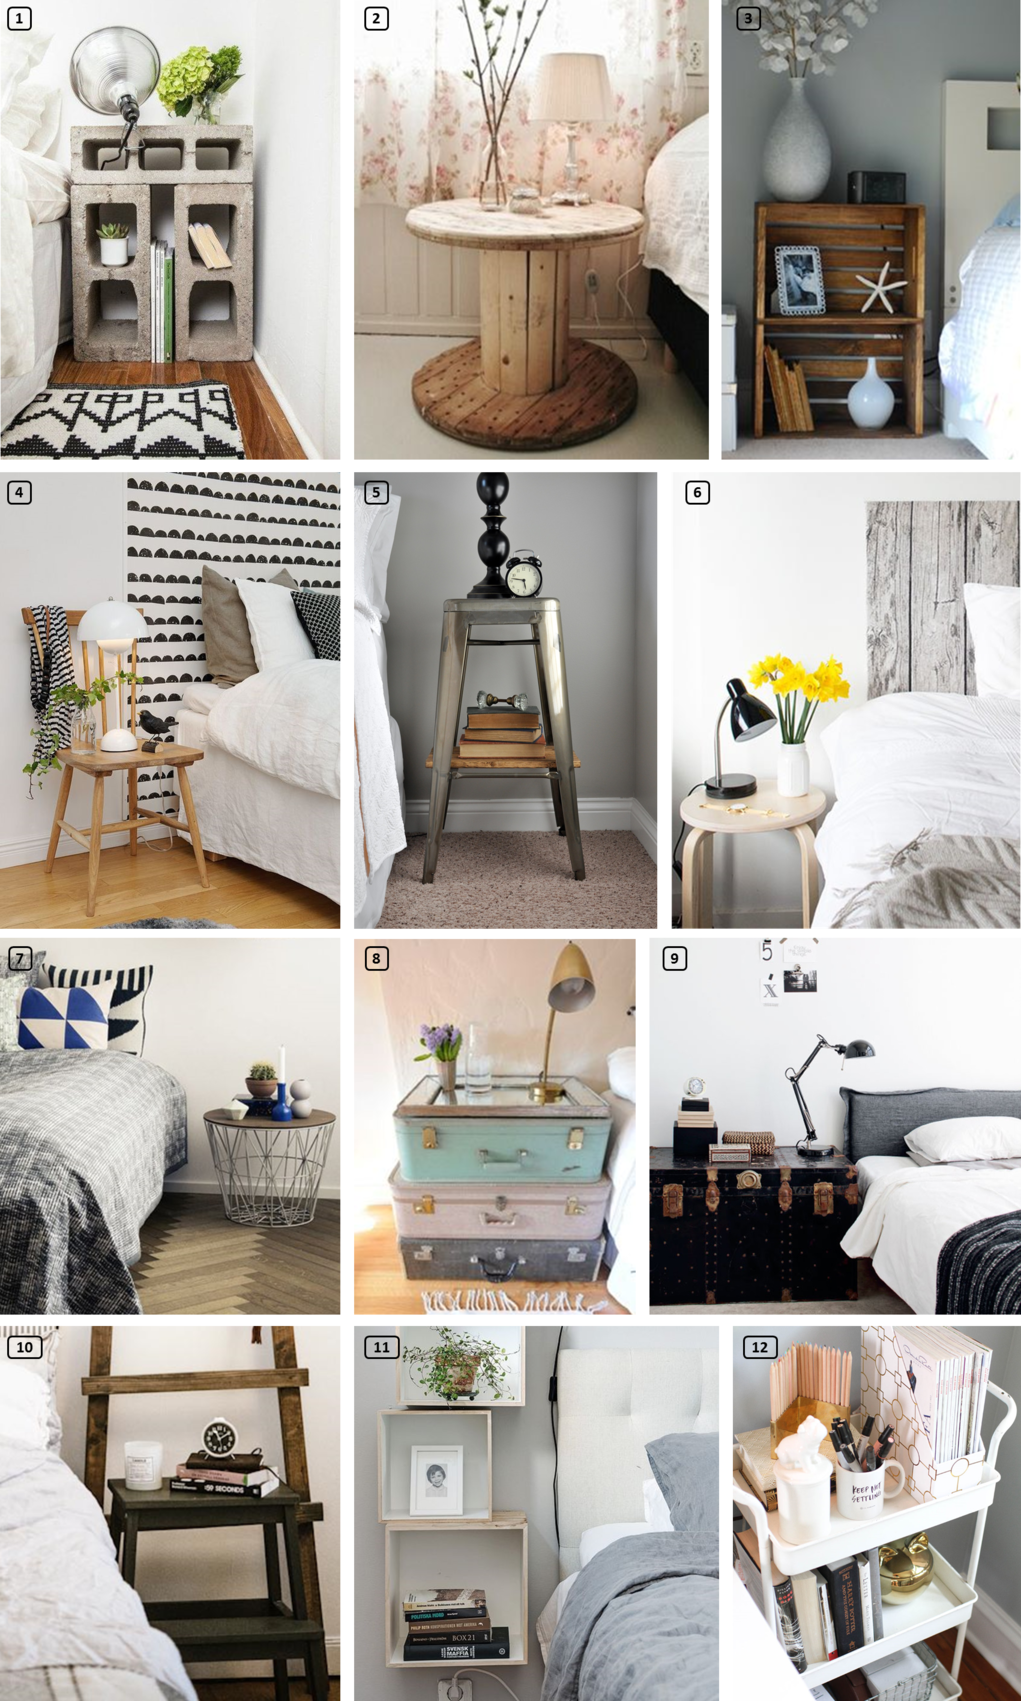 23 creative bedside tables for your rental bnbstaging le blog. Black Bedroom Furniture Sets. Home Design Ideas